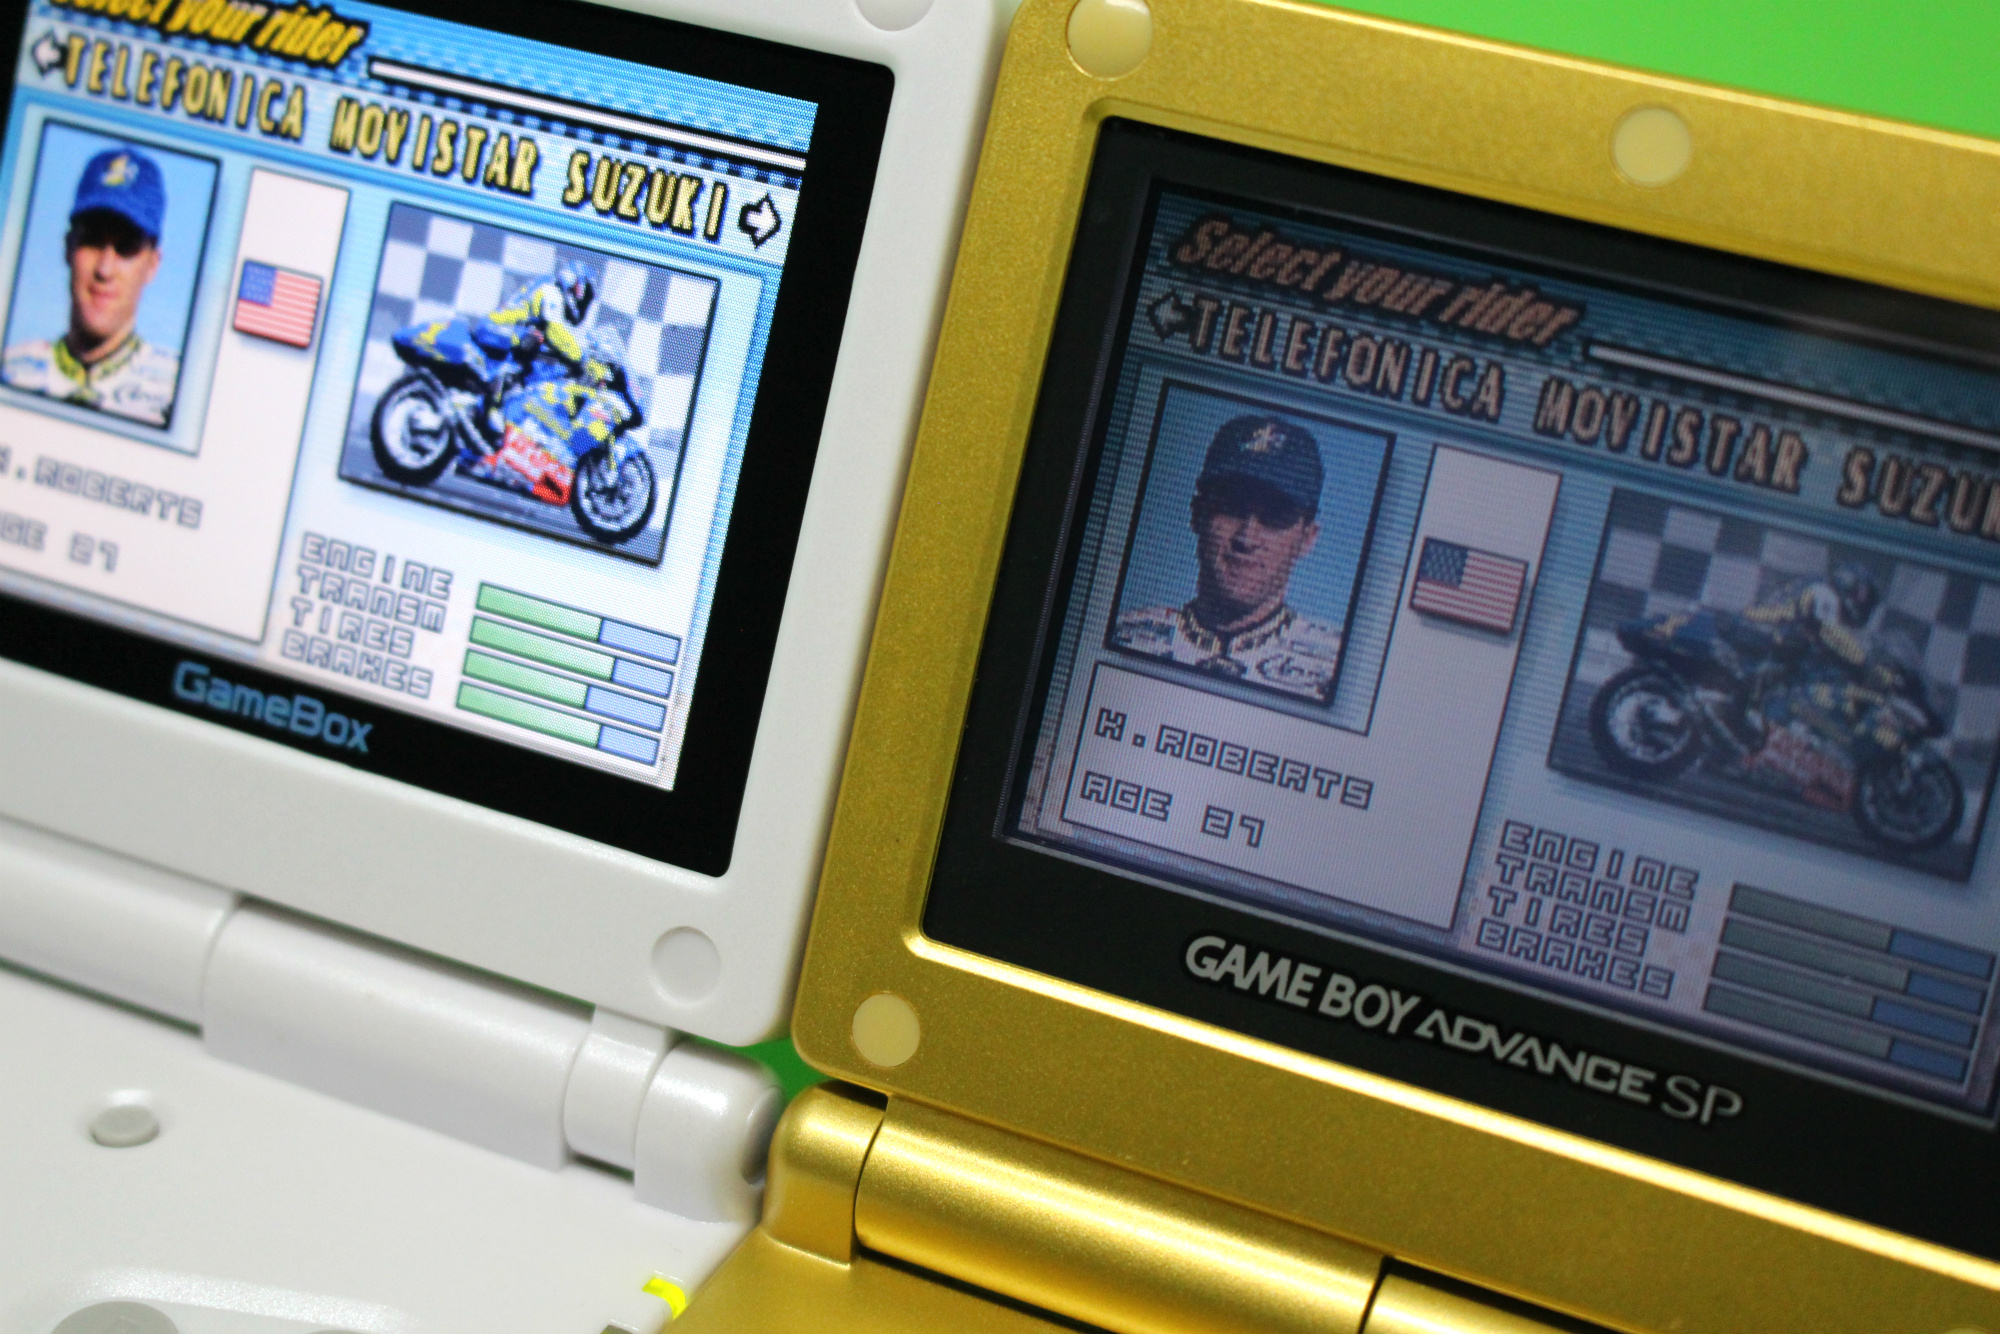 Game boy color kaufen - One Area Where Clone Systems Often Fall Down Is Interface As We Know Video Game Hardware Makers Spend A Lot Of Money On Making Sure The Controls On Their